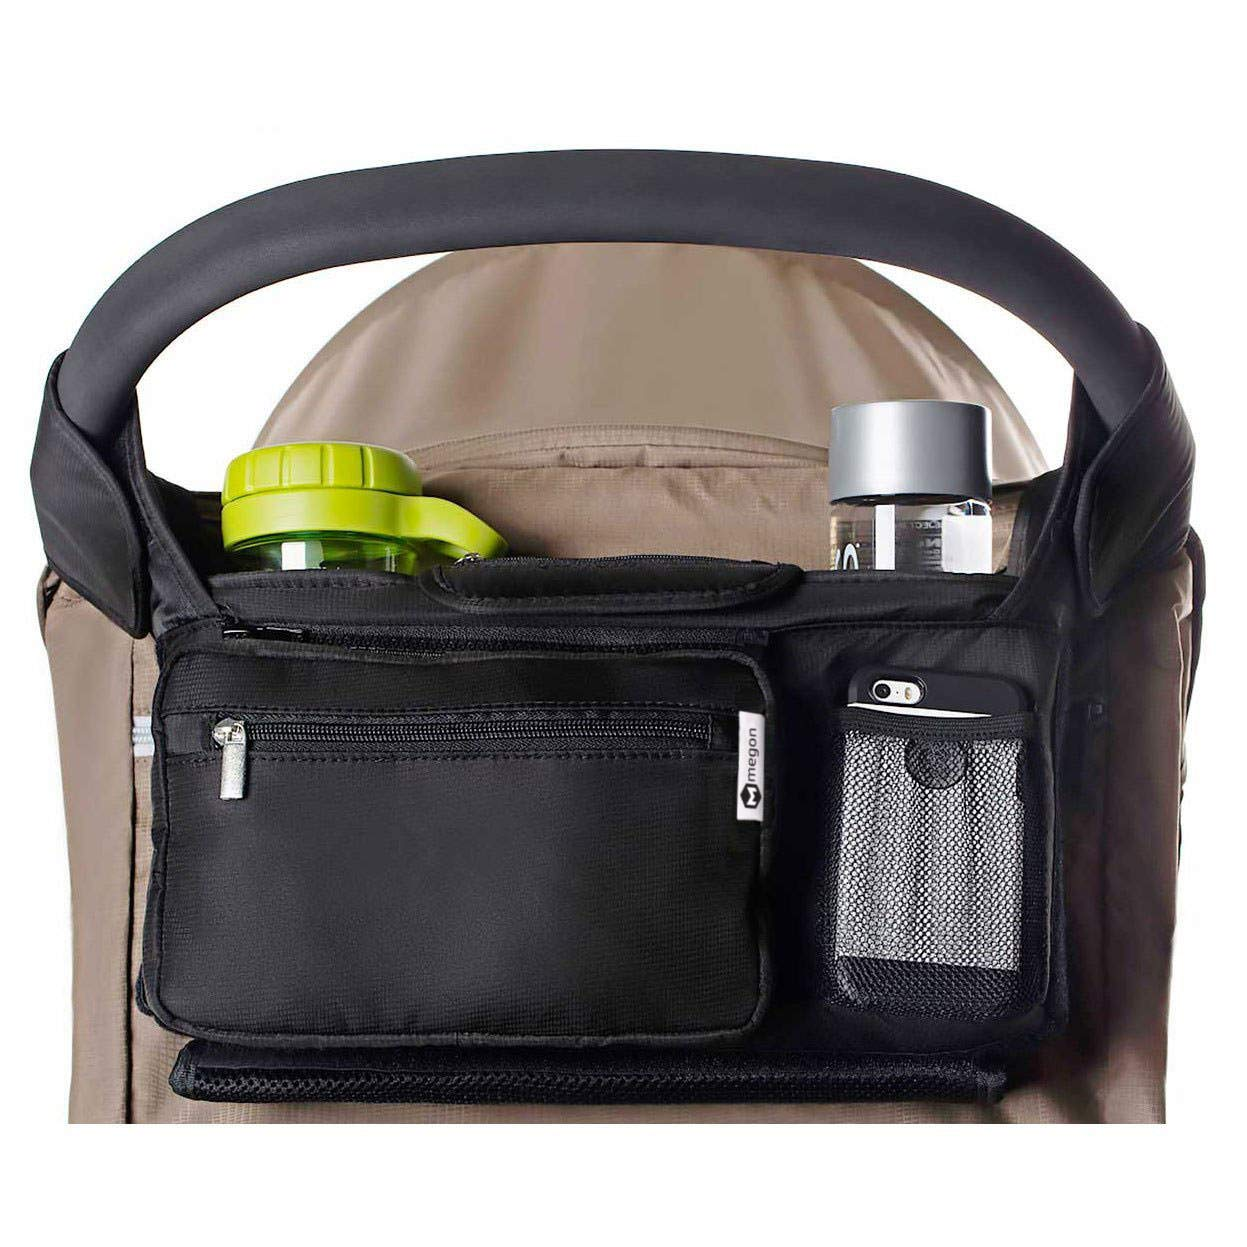 Insulated Cup Holders Keys Cell Phone Portable Pram Organiser Wallet Diapers Multi Function Organizer Bag for Joie chrome dlx Pushchair Organizer Stroller Bag Travel Parent Console Stores Bottles